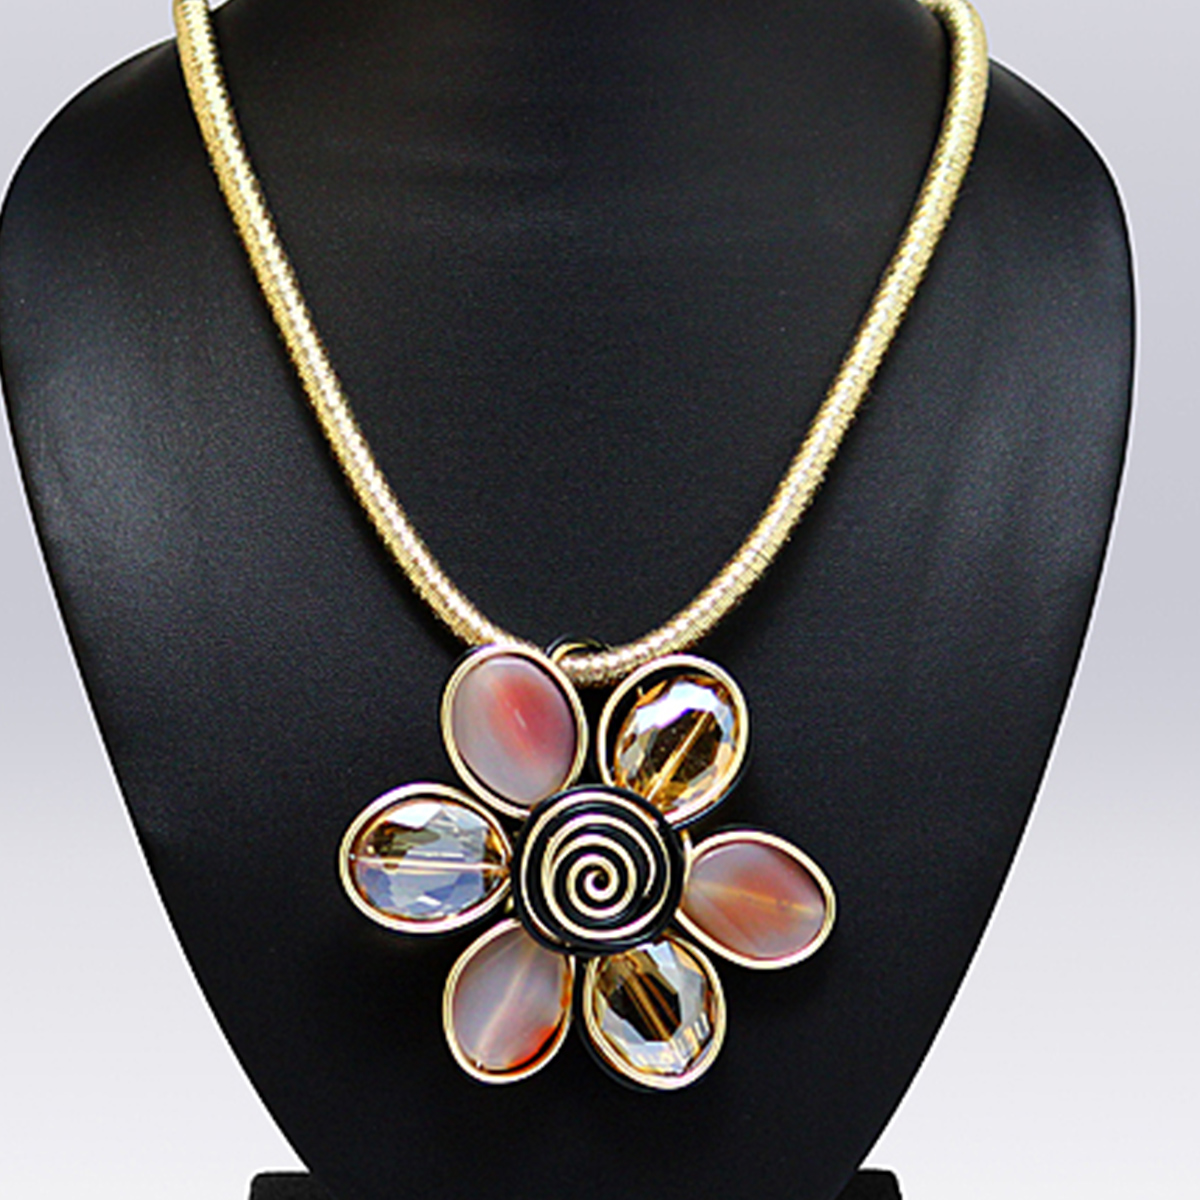 White And Beige Colored Imported Stone Western Necklace